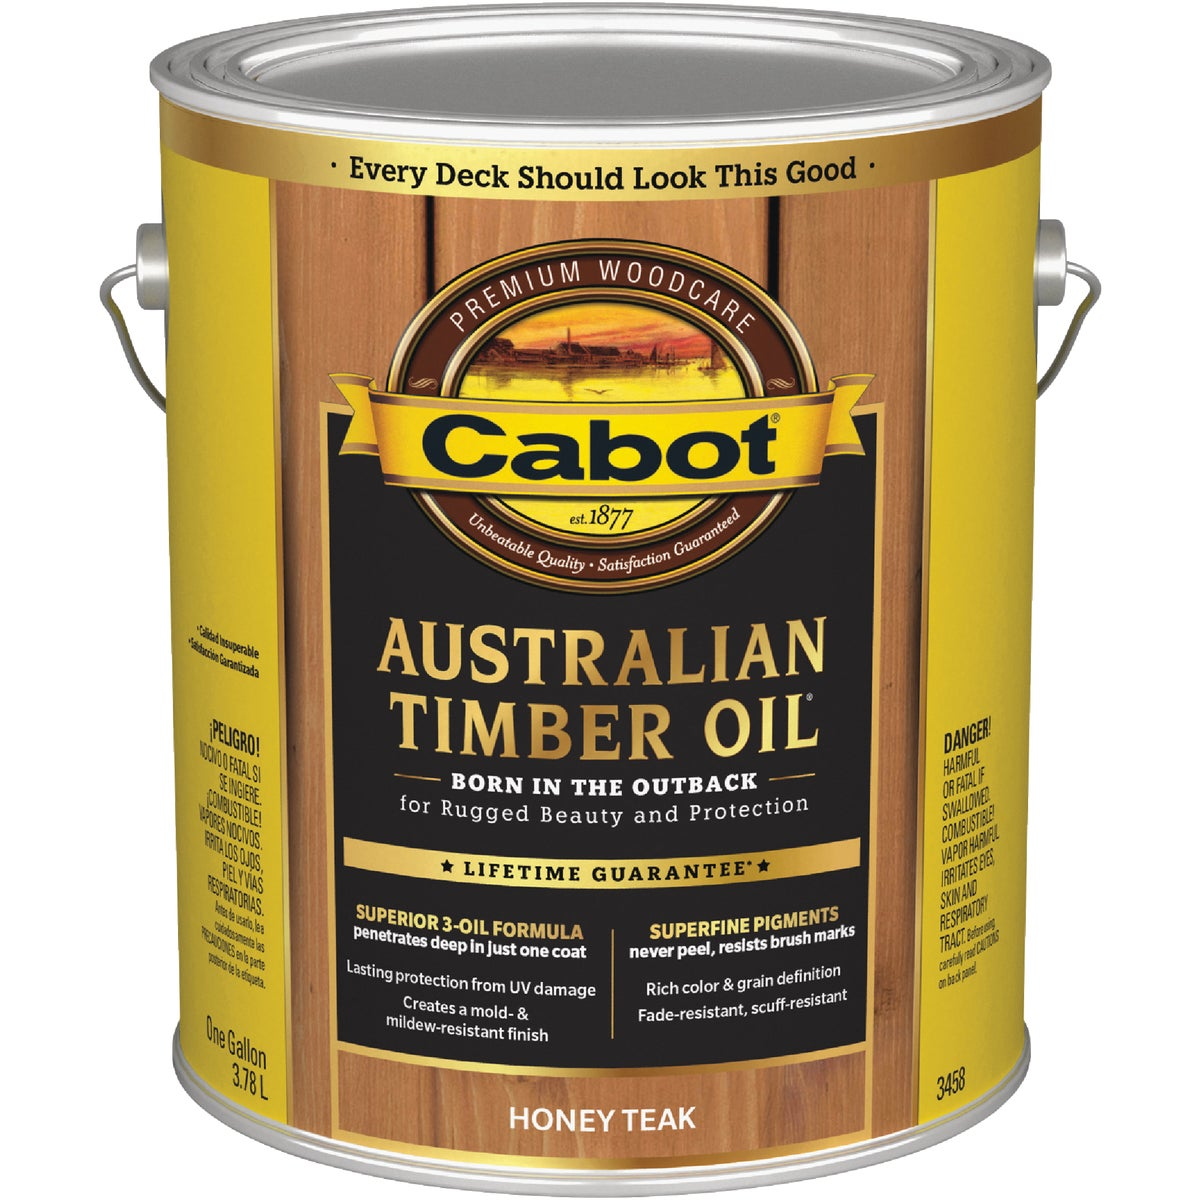 H TEAK TIMBER OIL FINISH - 140.0003458.007 by Valspar Corp